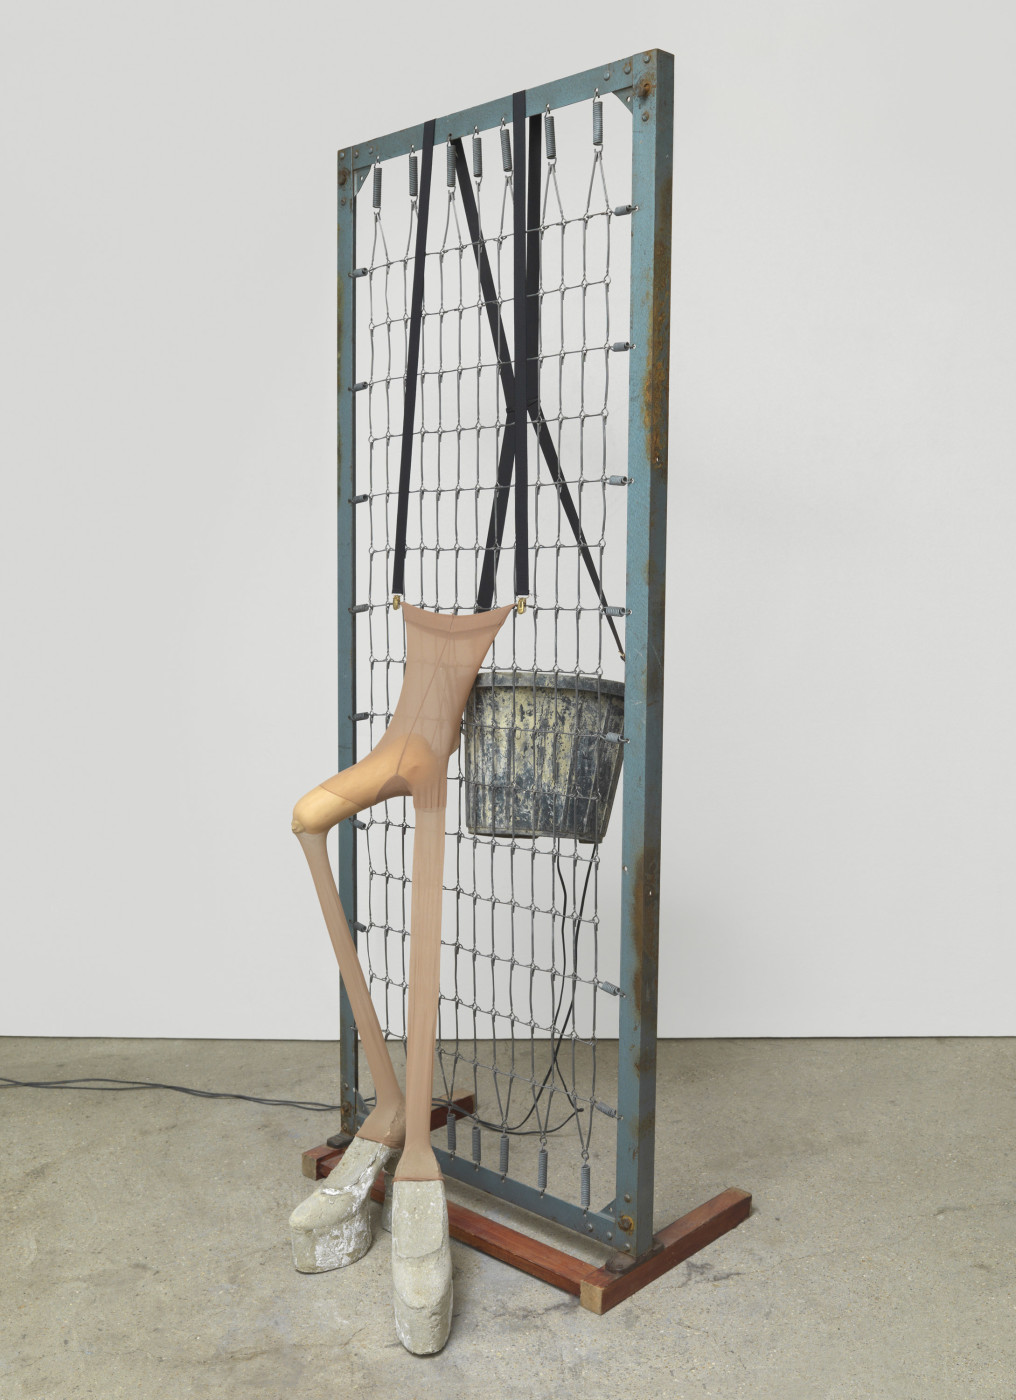 "<div class=""title""><em>Man versus human nature-2012</em>, 2005</div><div class=""medium"">plastic bucket, wood and steel bed base, braces, cement, nylon tights, butternut squash</div><div class=""dimensions"">194.3 x 76.2 x 45.7 cm</div><div class=""dimensions"">76 ½ x 30 x 18 in.</div>"